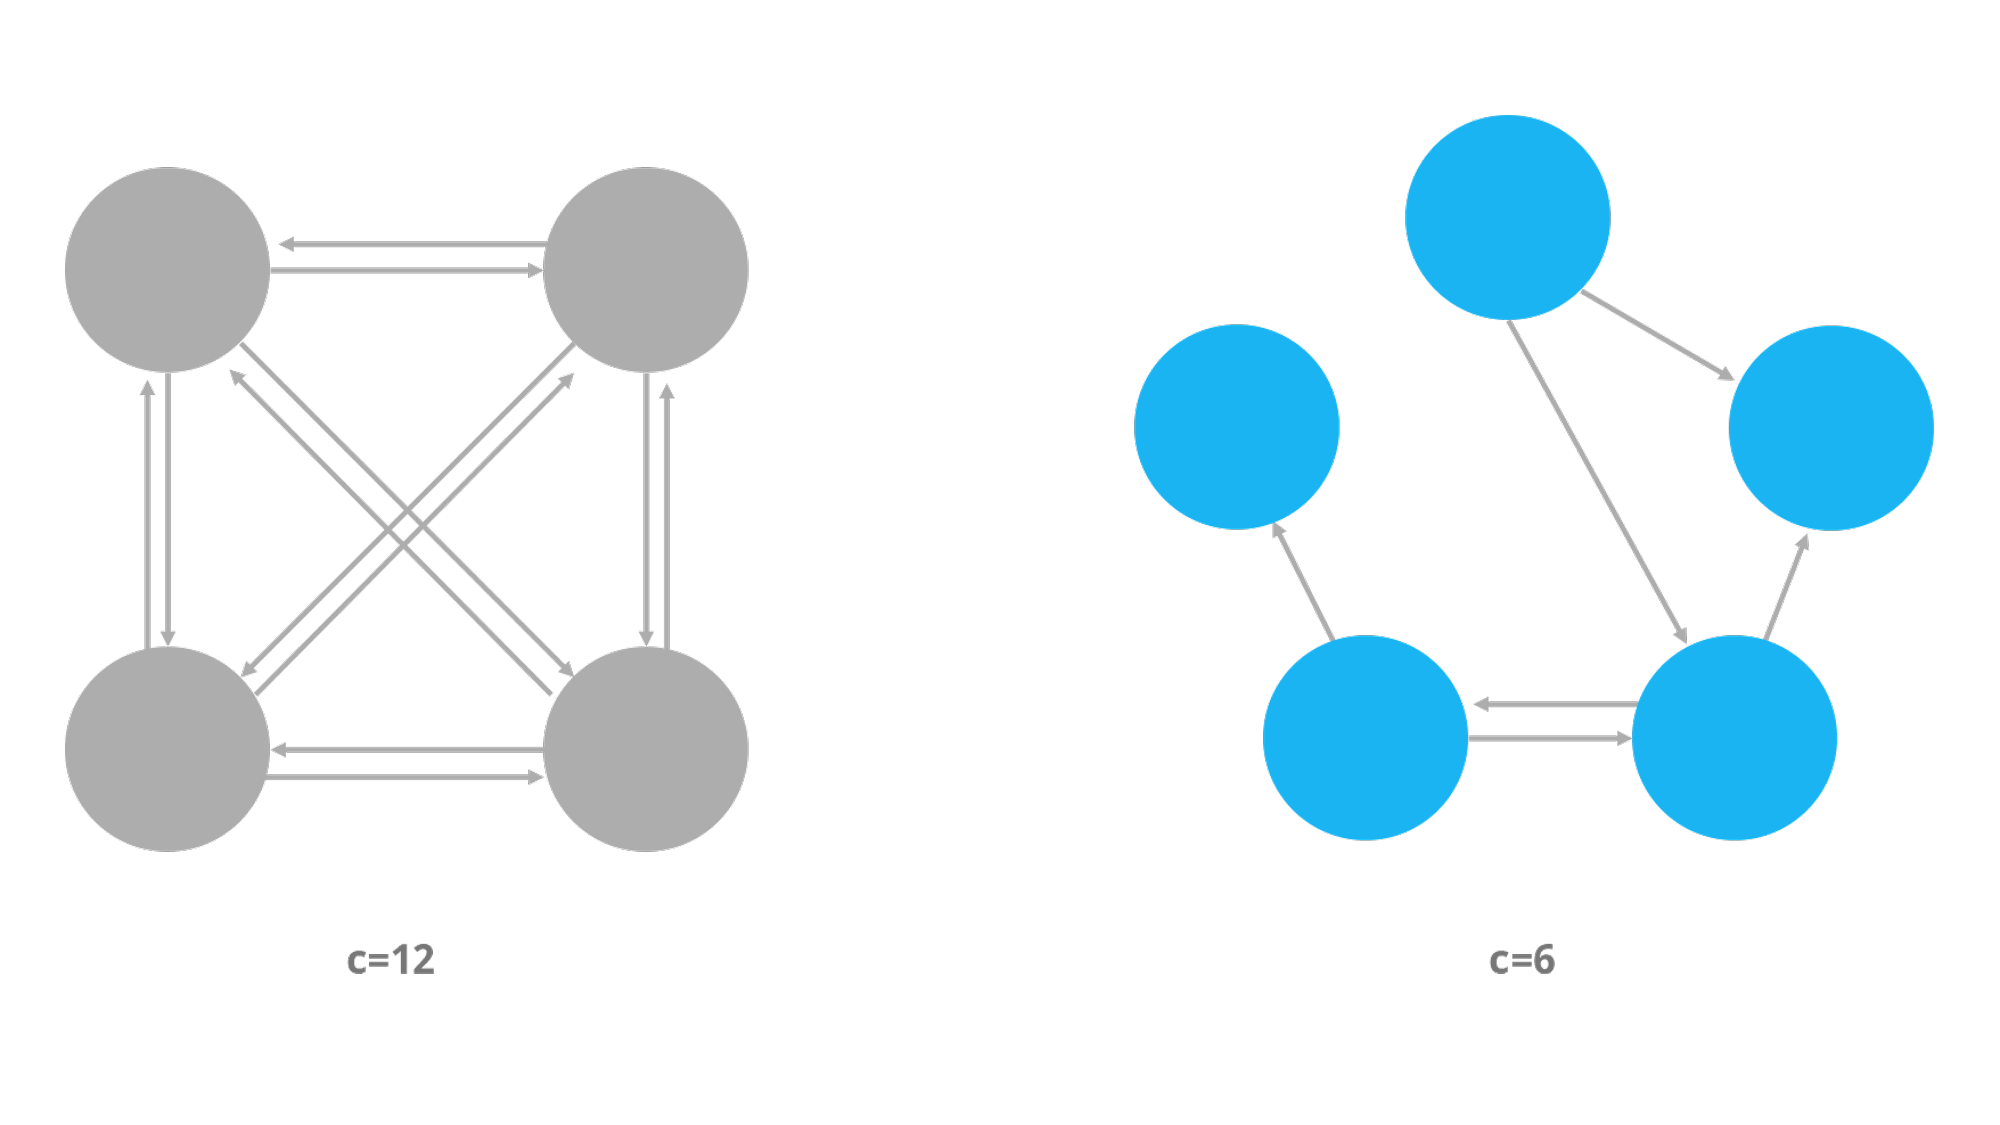 Loosely coupled vs. tightly coupled organization structures